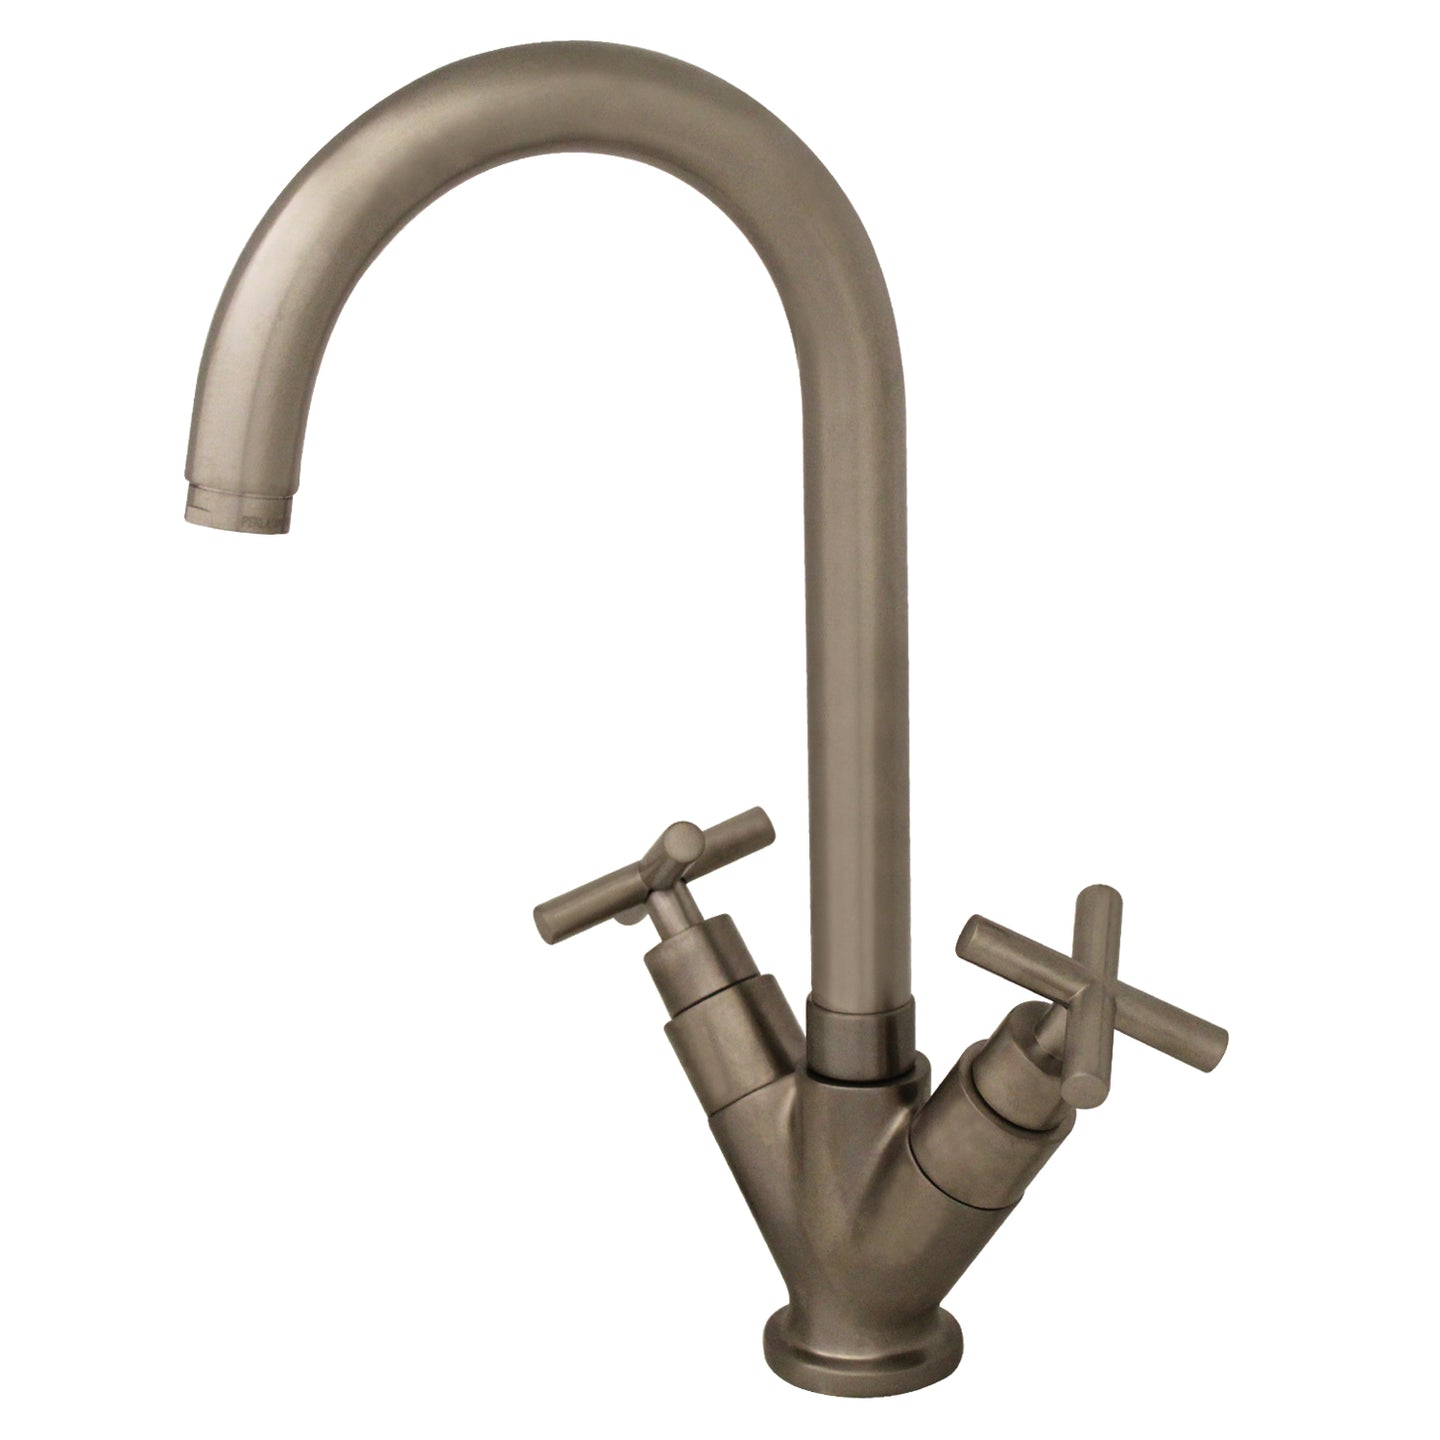 Whitehaus Luxe Single Hole/Dual Handle Entertainment/Prep Faucet with High Tubular Swivel Spout